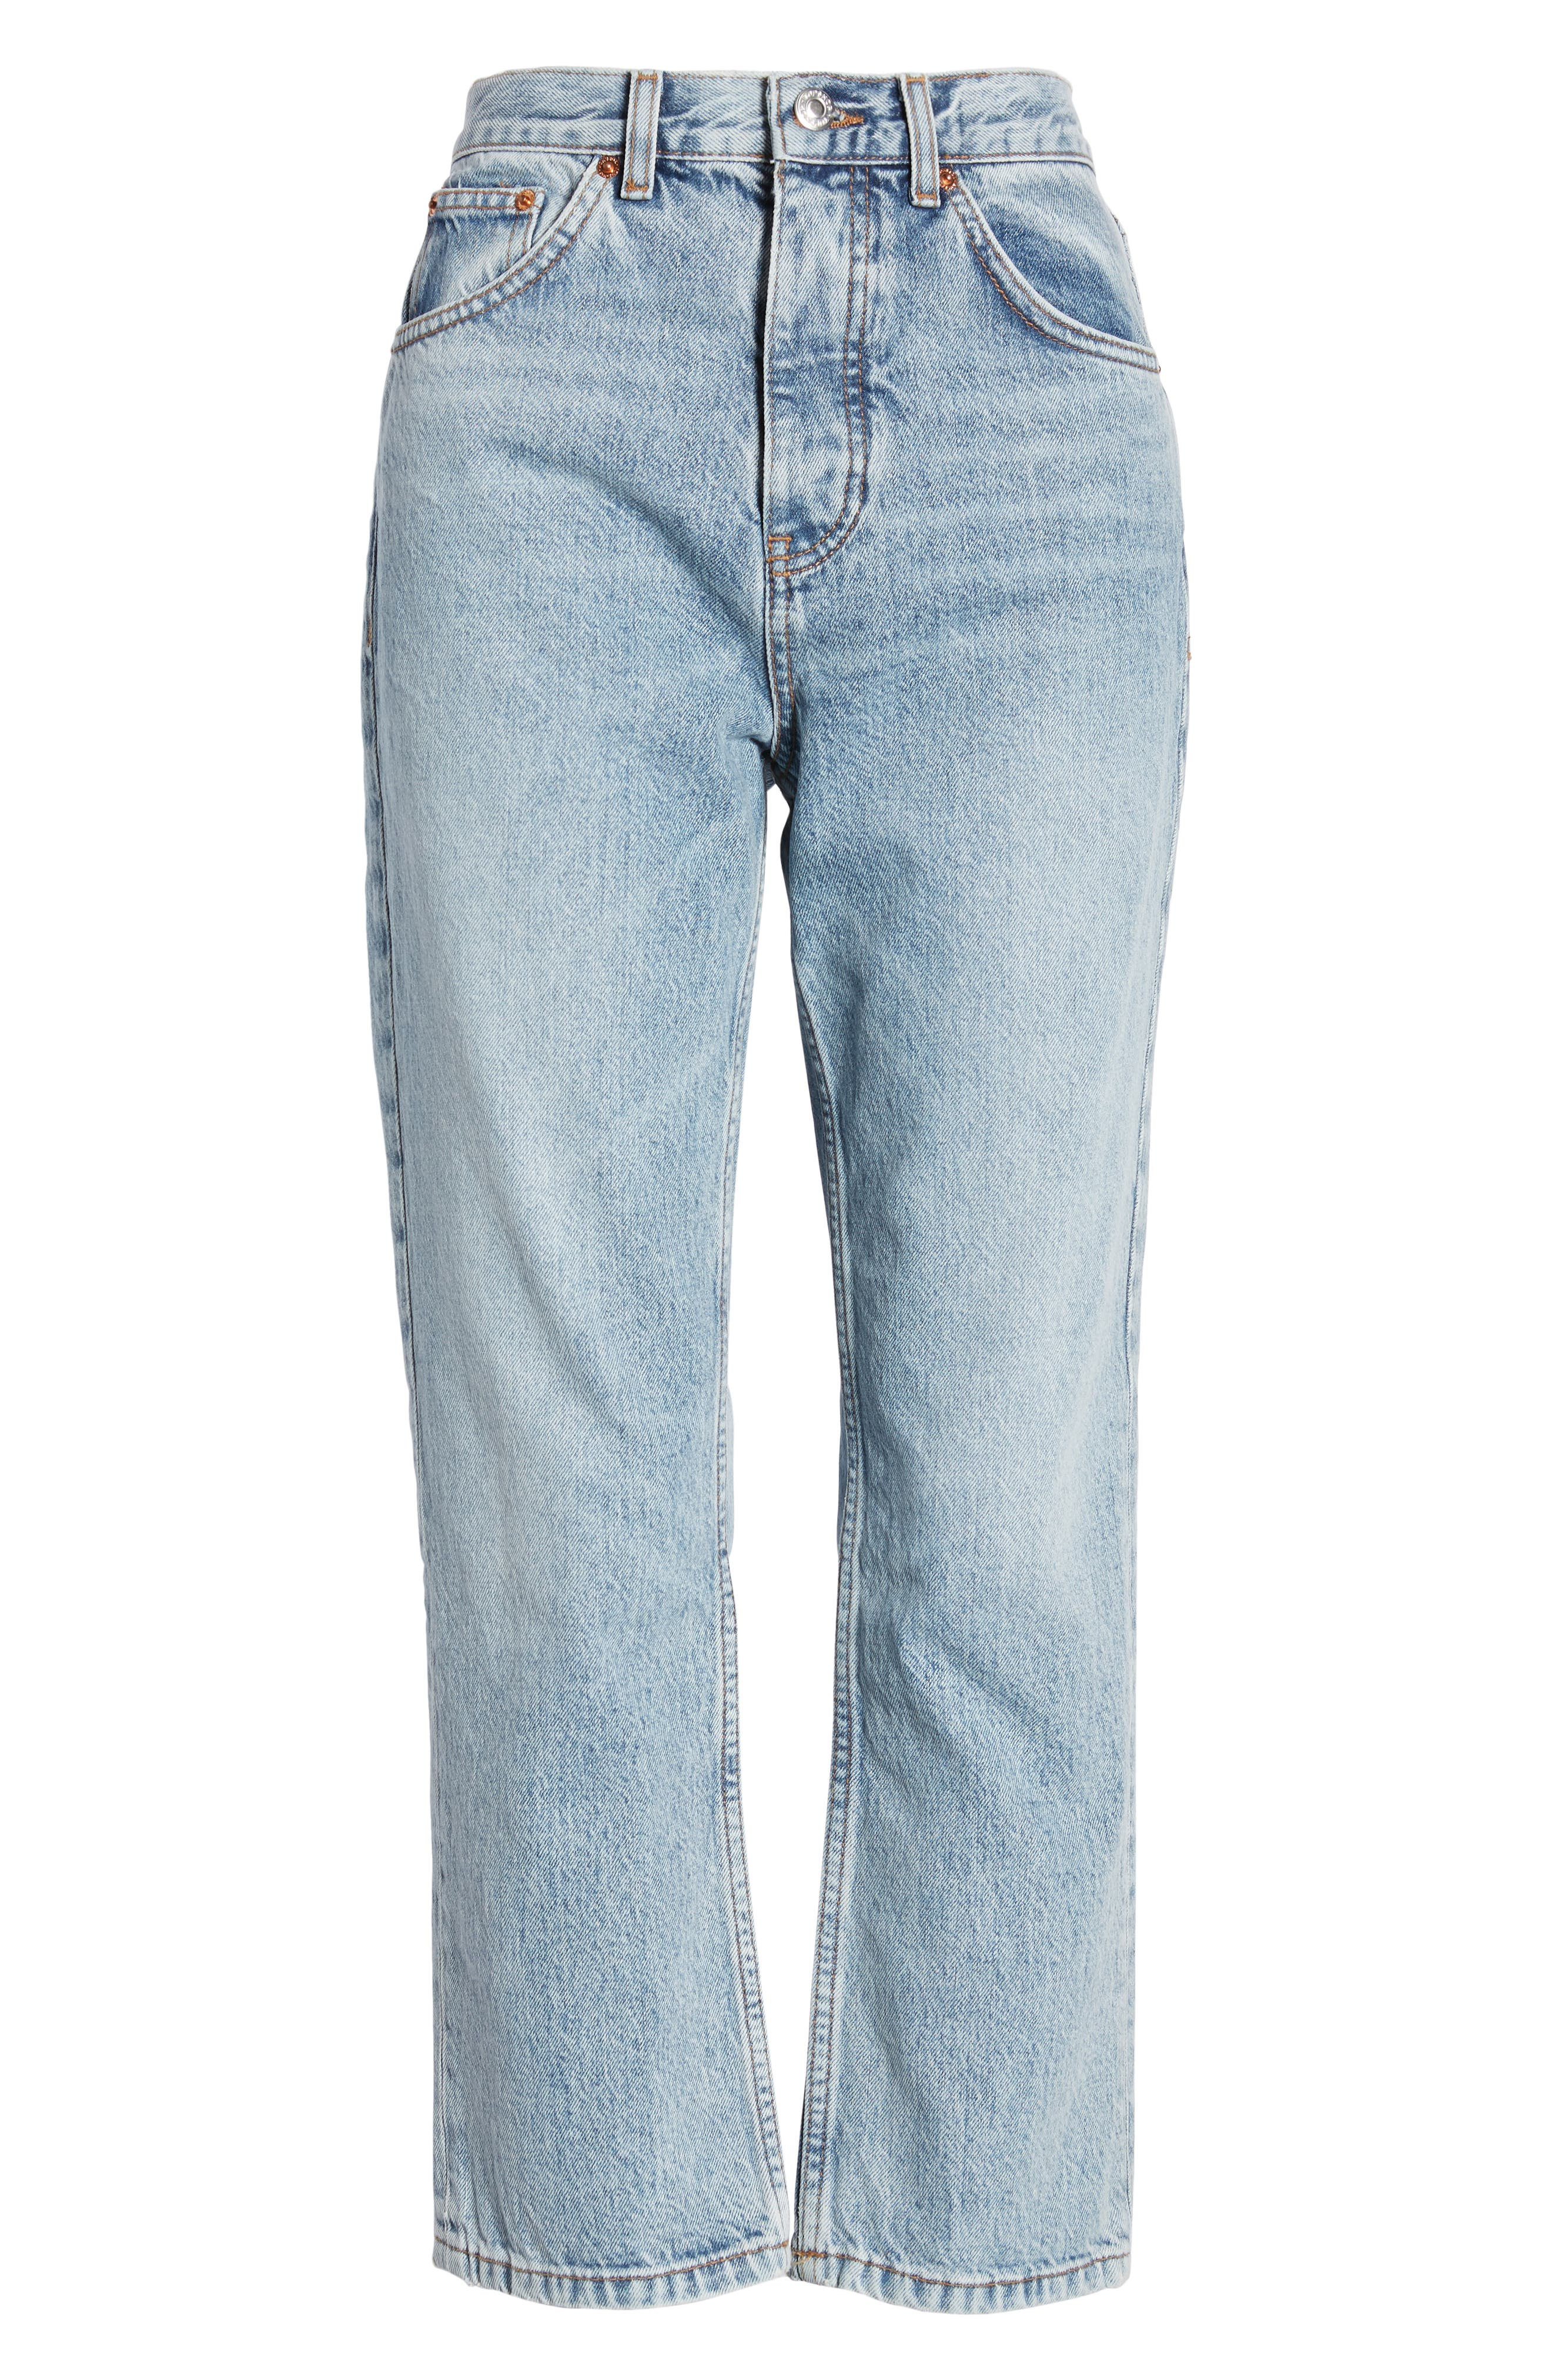 TOPSHOP, Editor Straight Leg Jeans, Alternate thumbnail 3, color, BLEACH